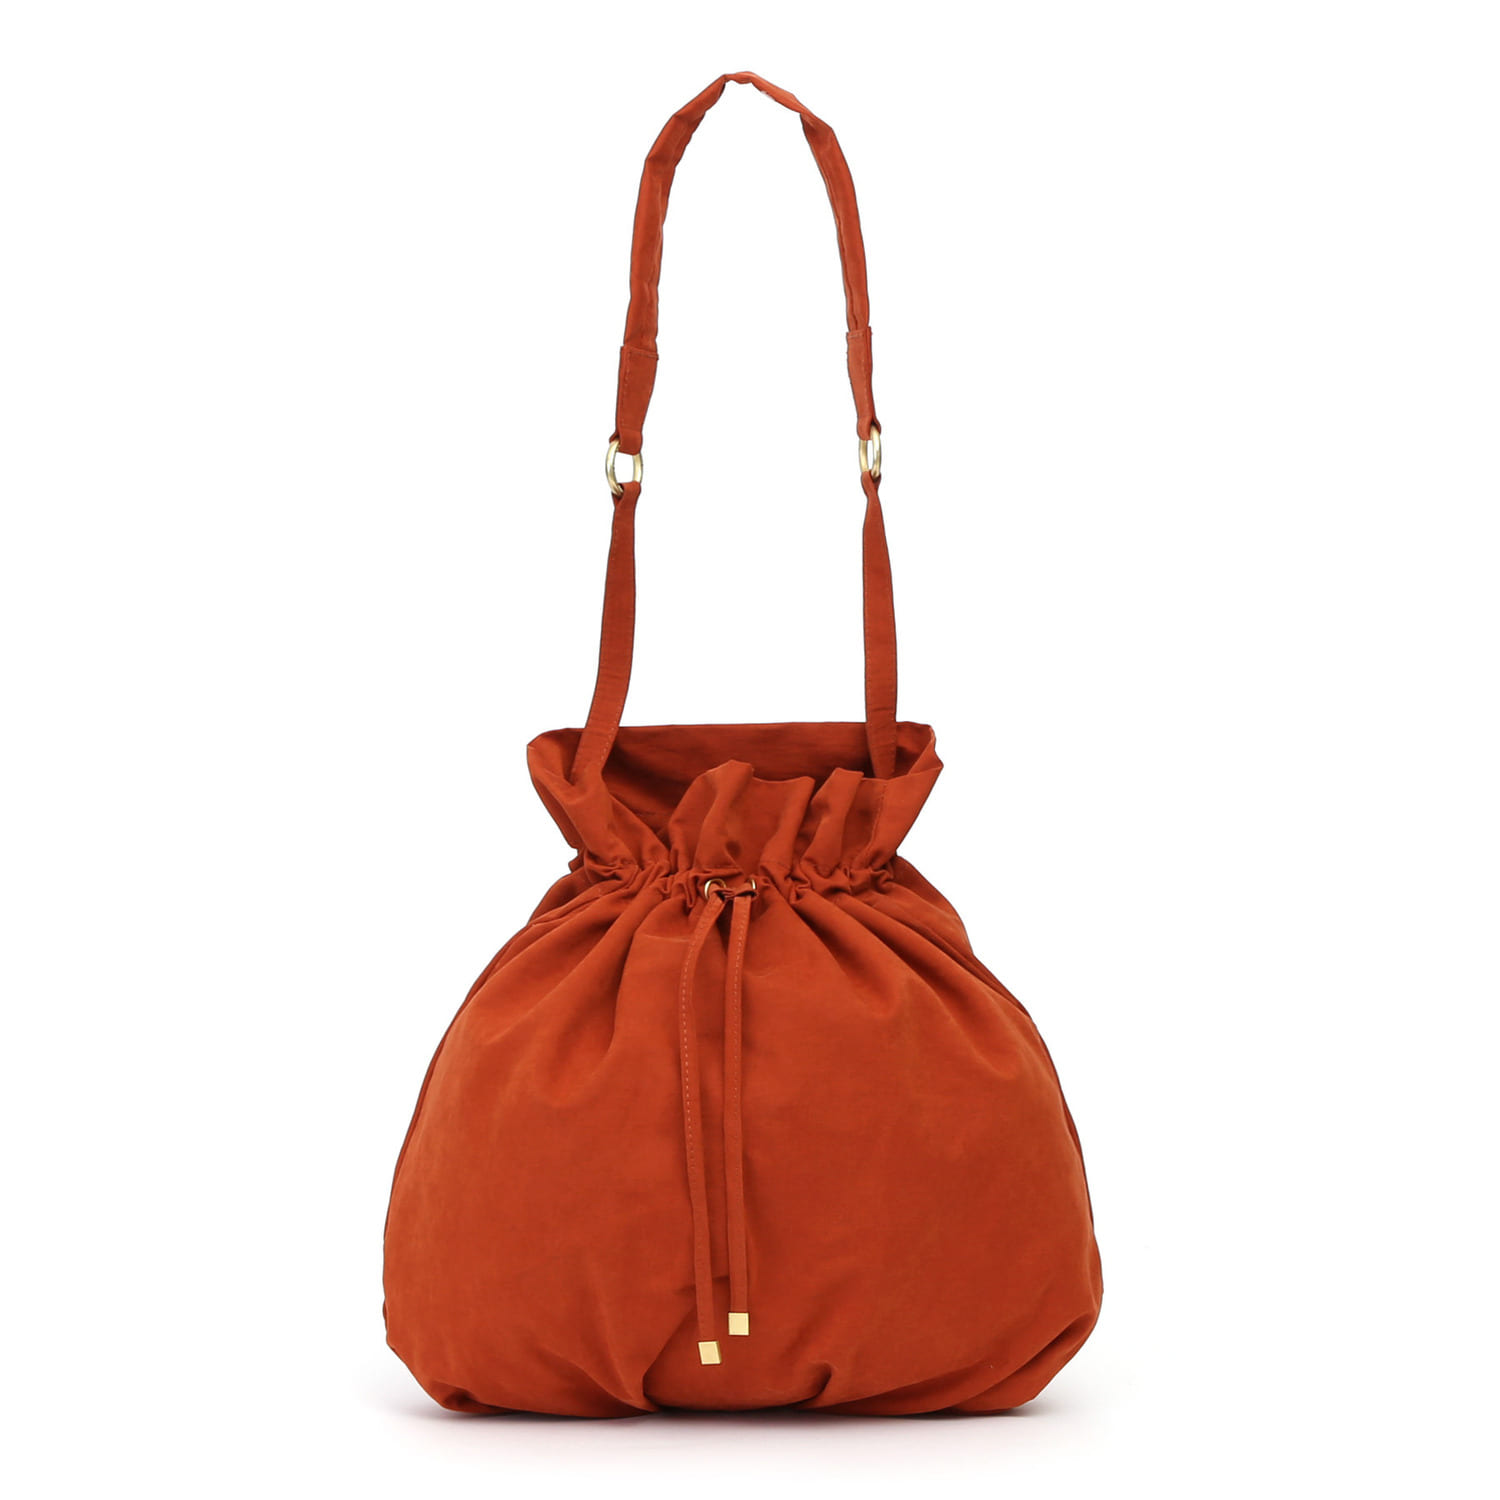 POT BAG / WRINKLE / NPC / BRICK ORANGE